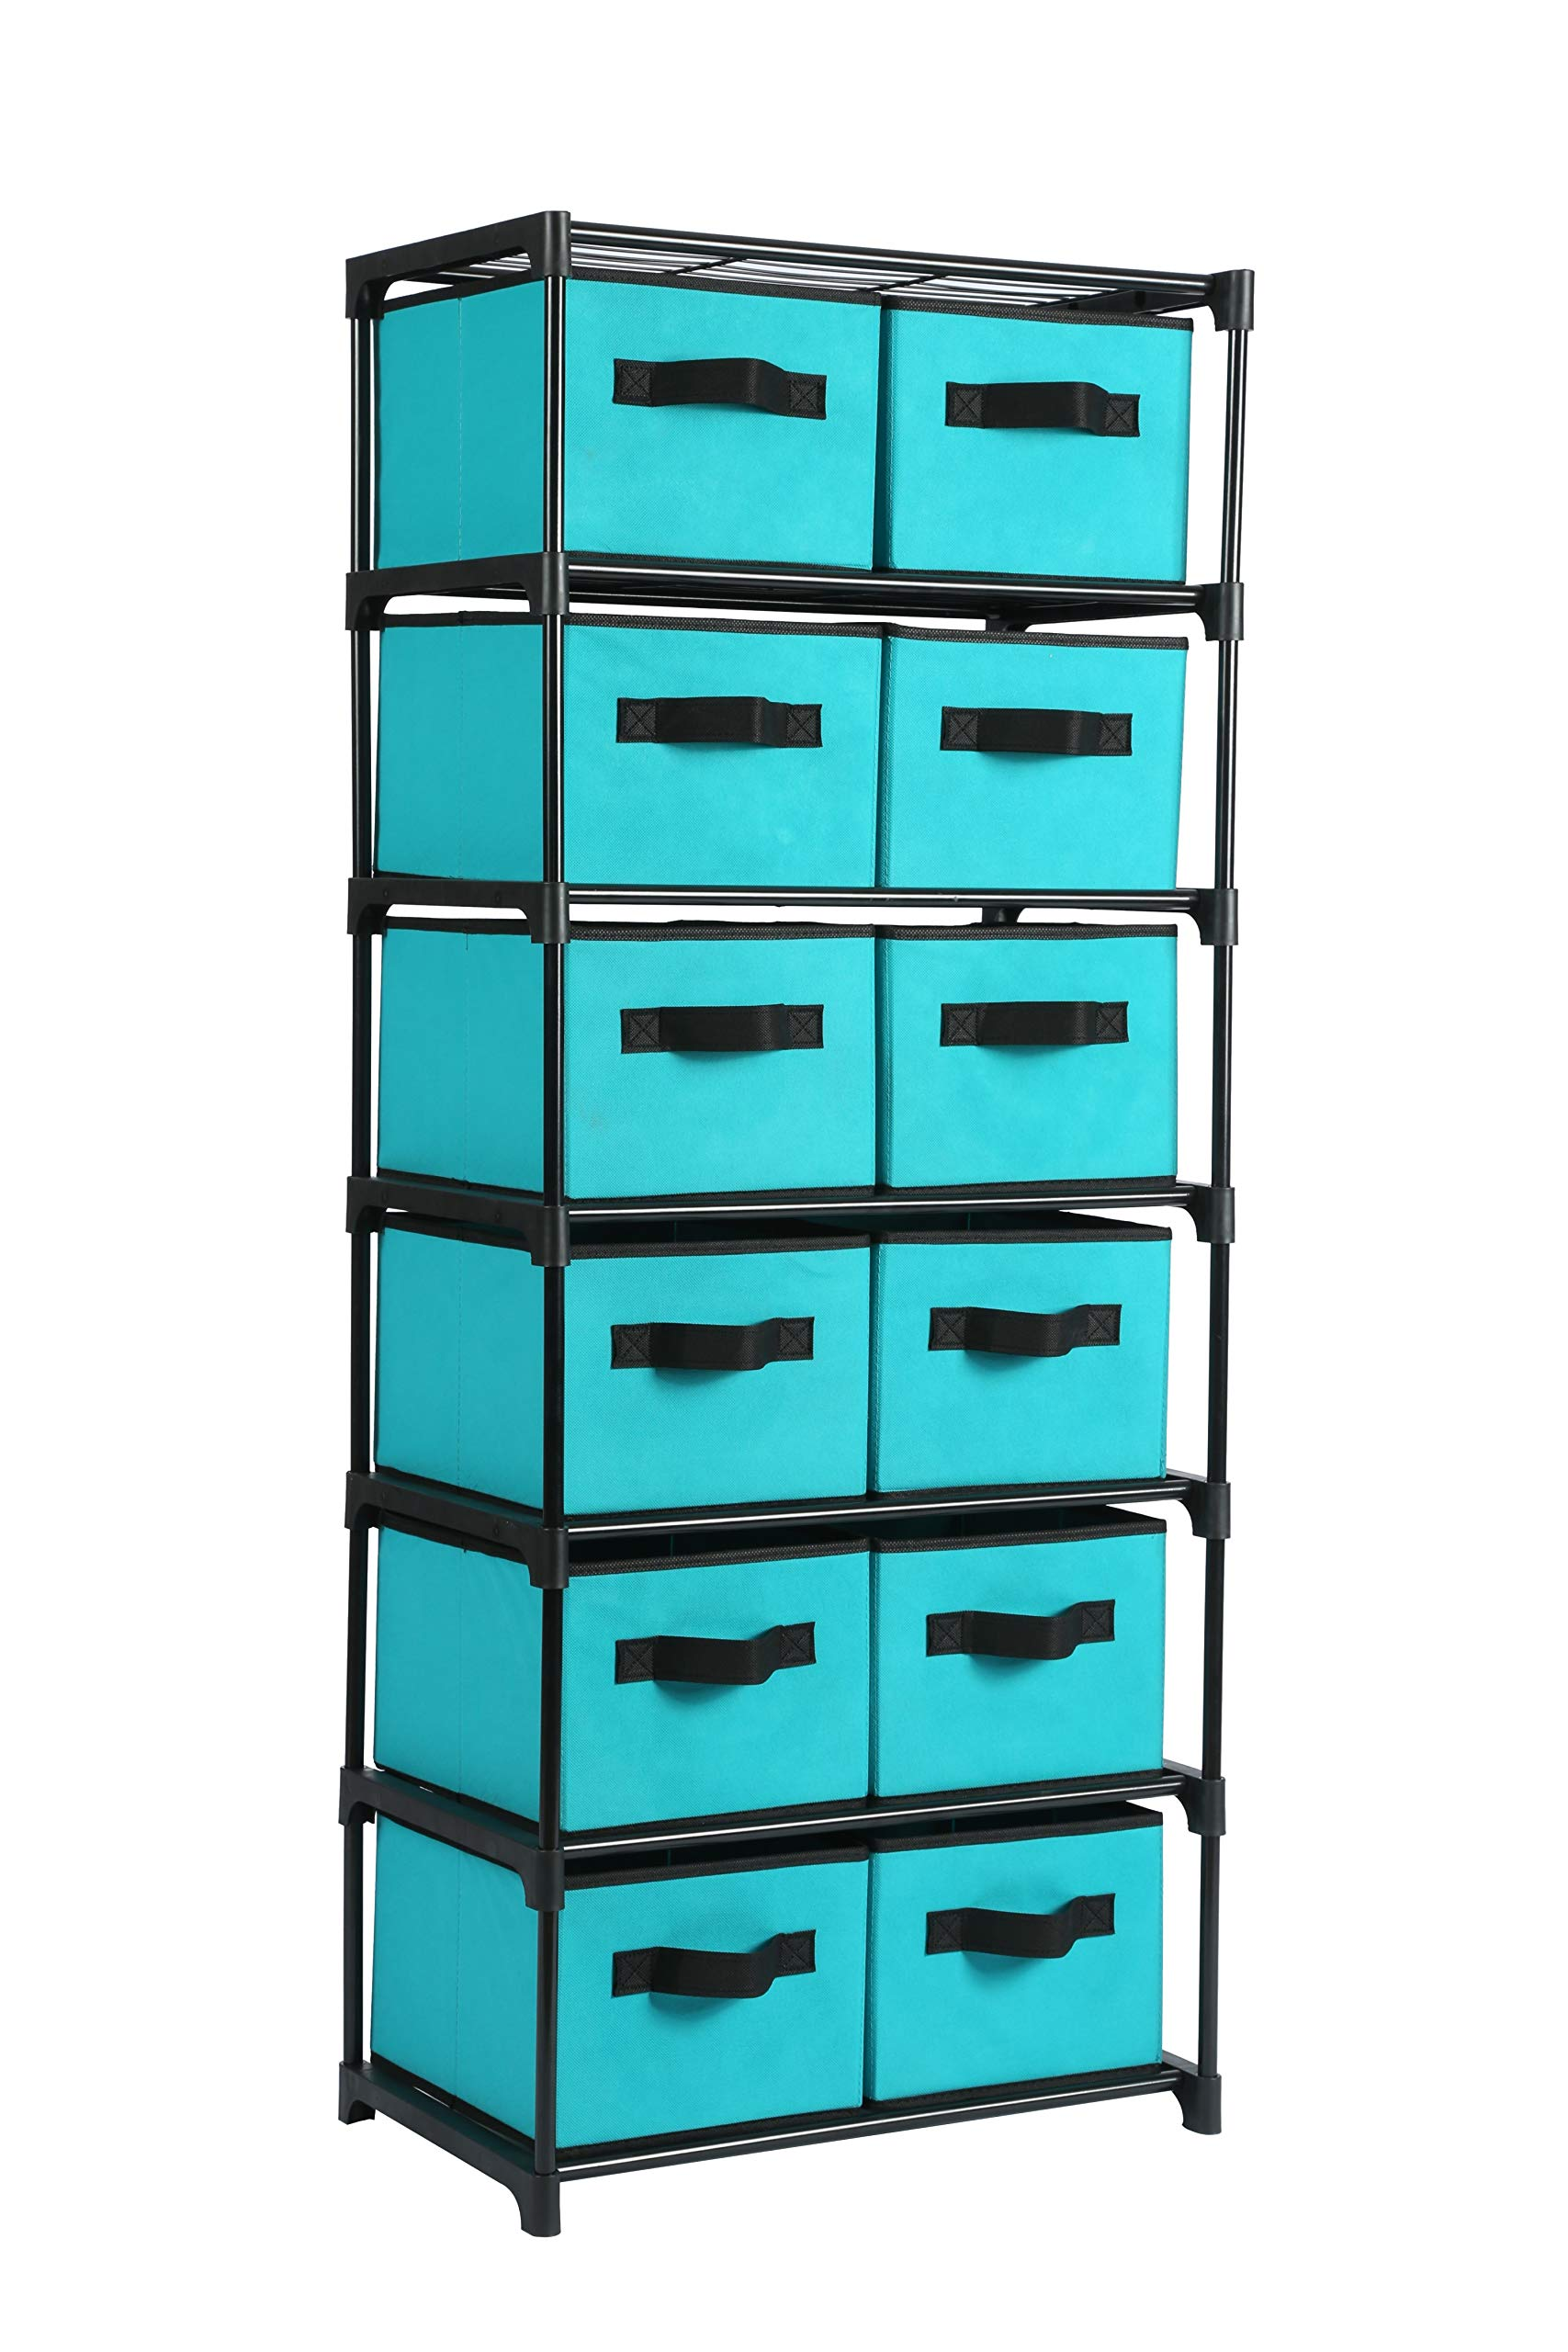 Homebi Storage Chest Shelf Unit 12-Drawer Storage Cabinet with 6-Tier Metal Wire Shelf and 12 Removable Non-woven Fabric Bins in Turquoise,20.67''W x 12''D x49.21''H by HOME BI